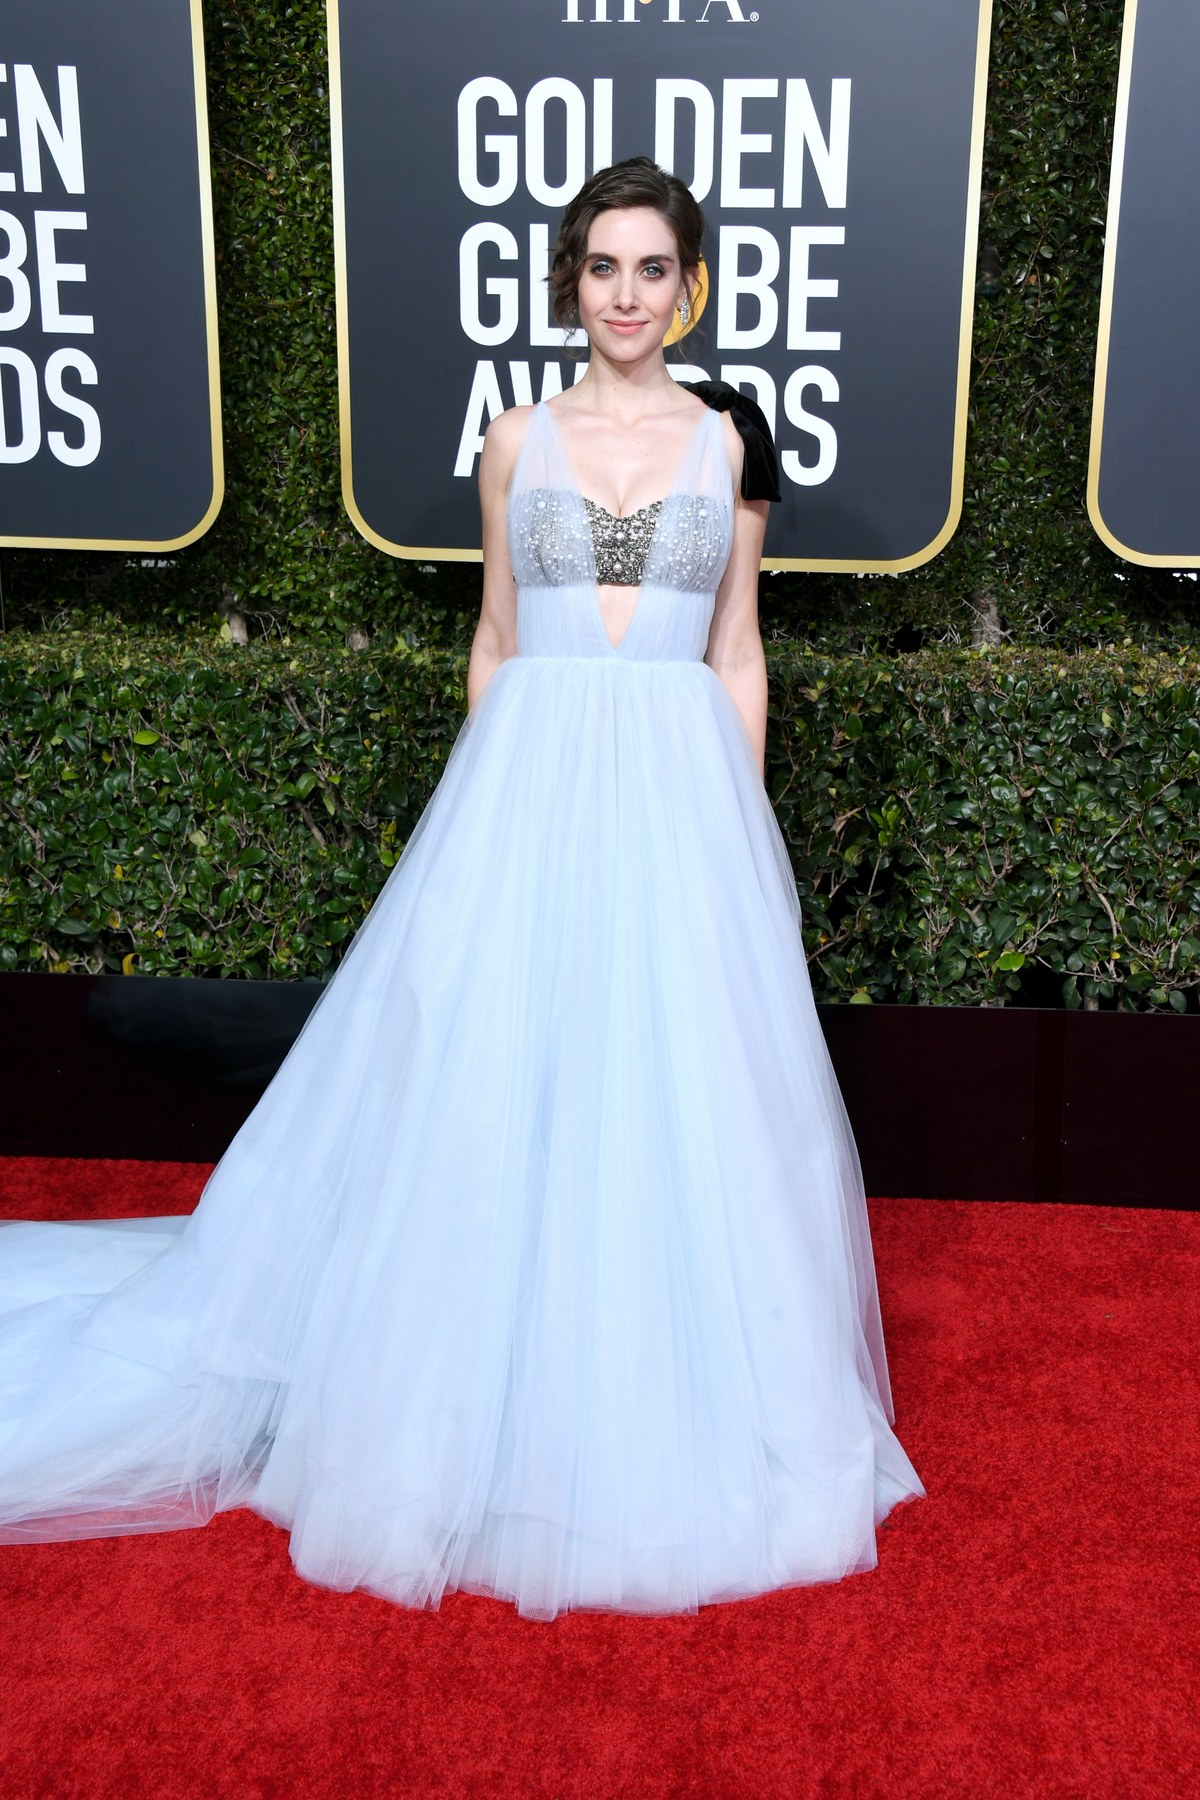 Alison Brie wearing Vera Wang Golden Globes